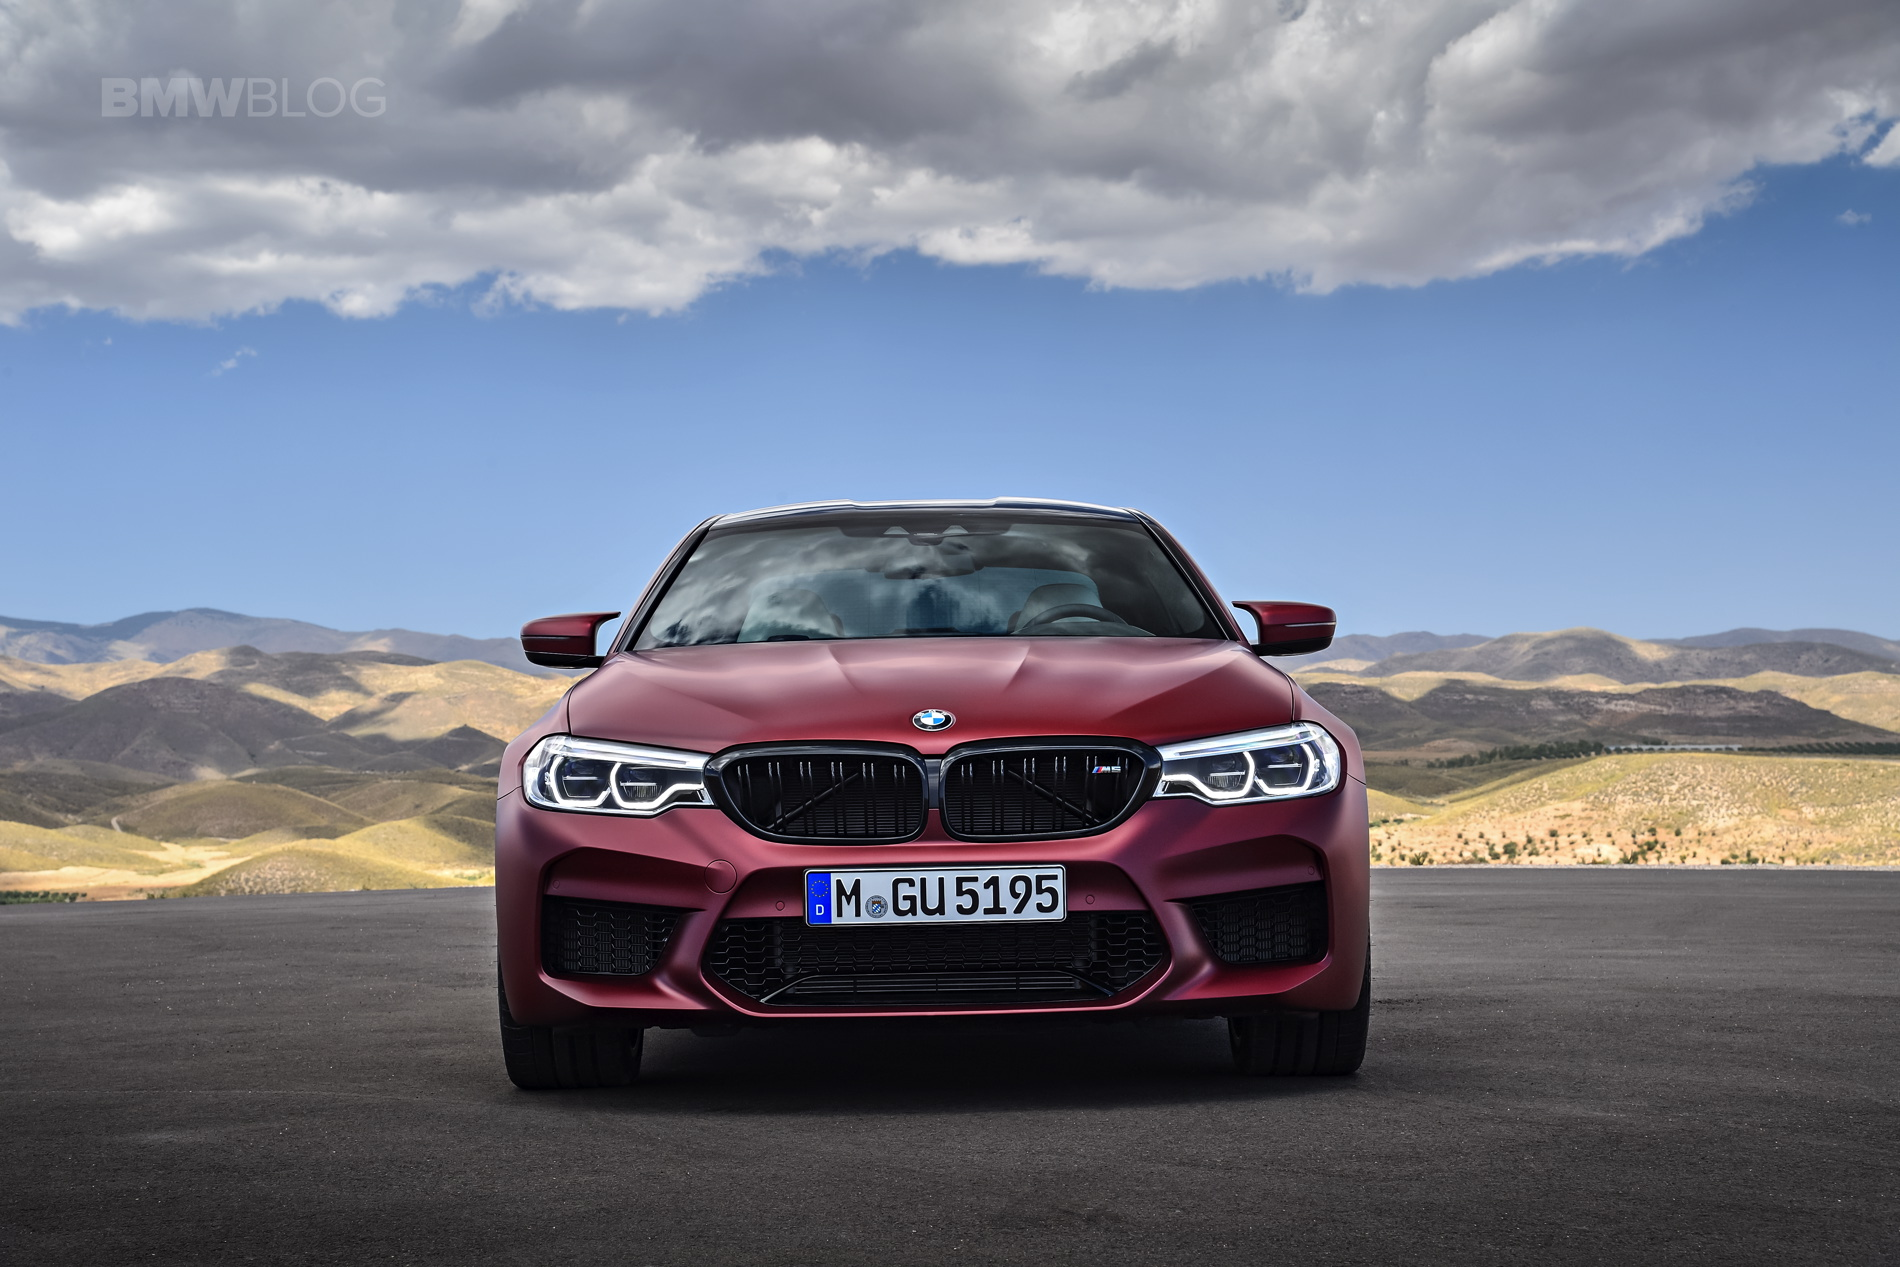 2018 BMW M5 Frozen Dark Red Metallic 05